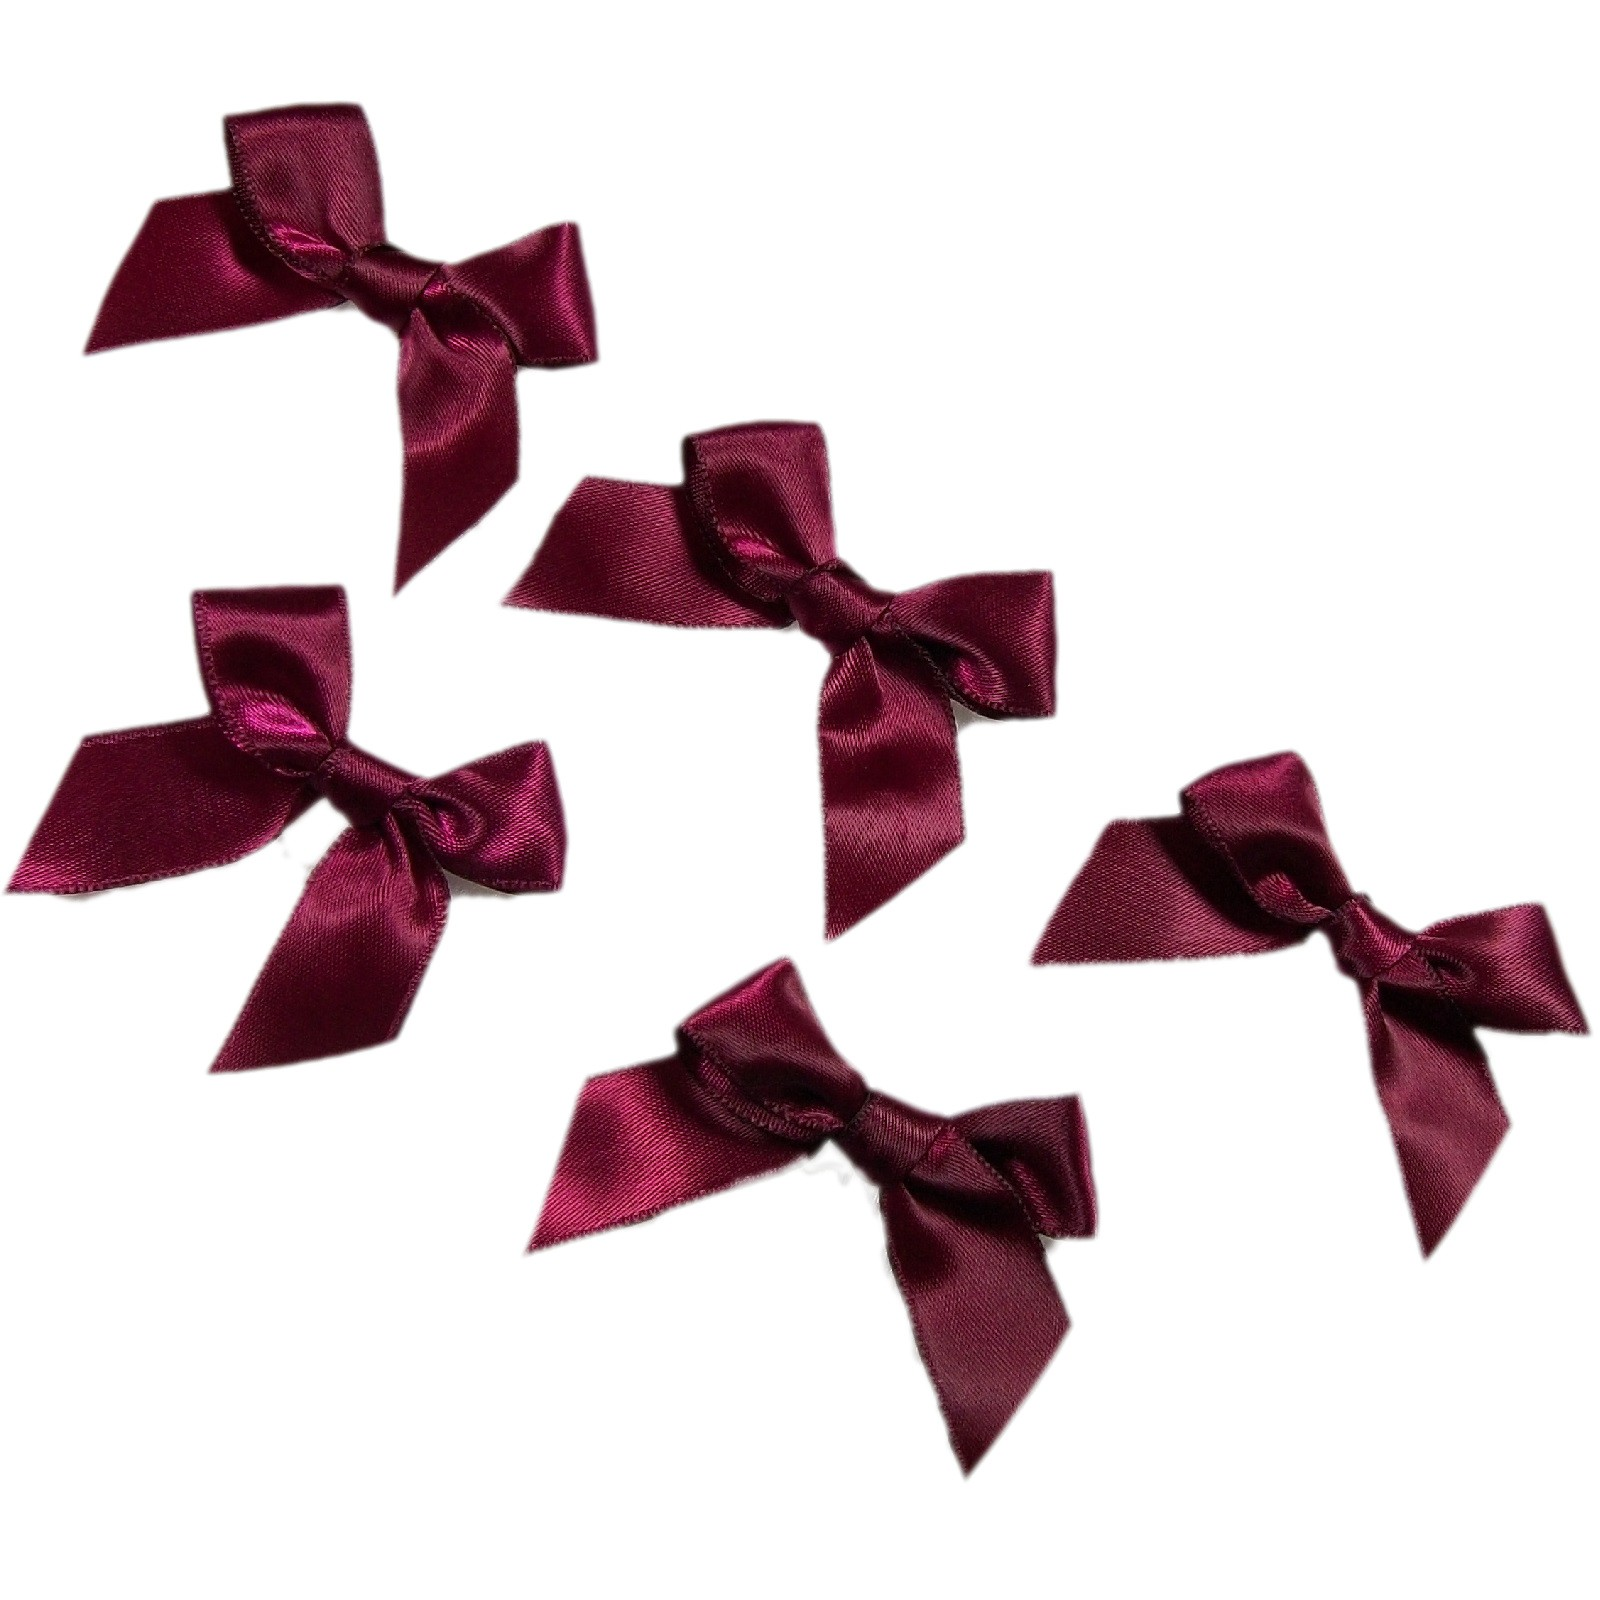 Satin Ribbon Bows approx 5.5cm wide Wine Pack of 5